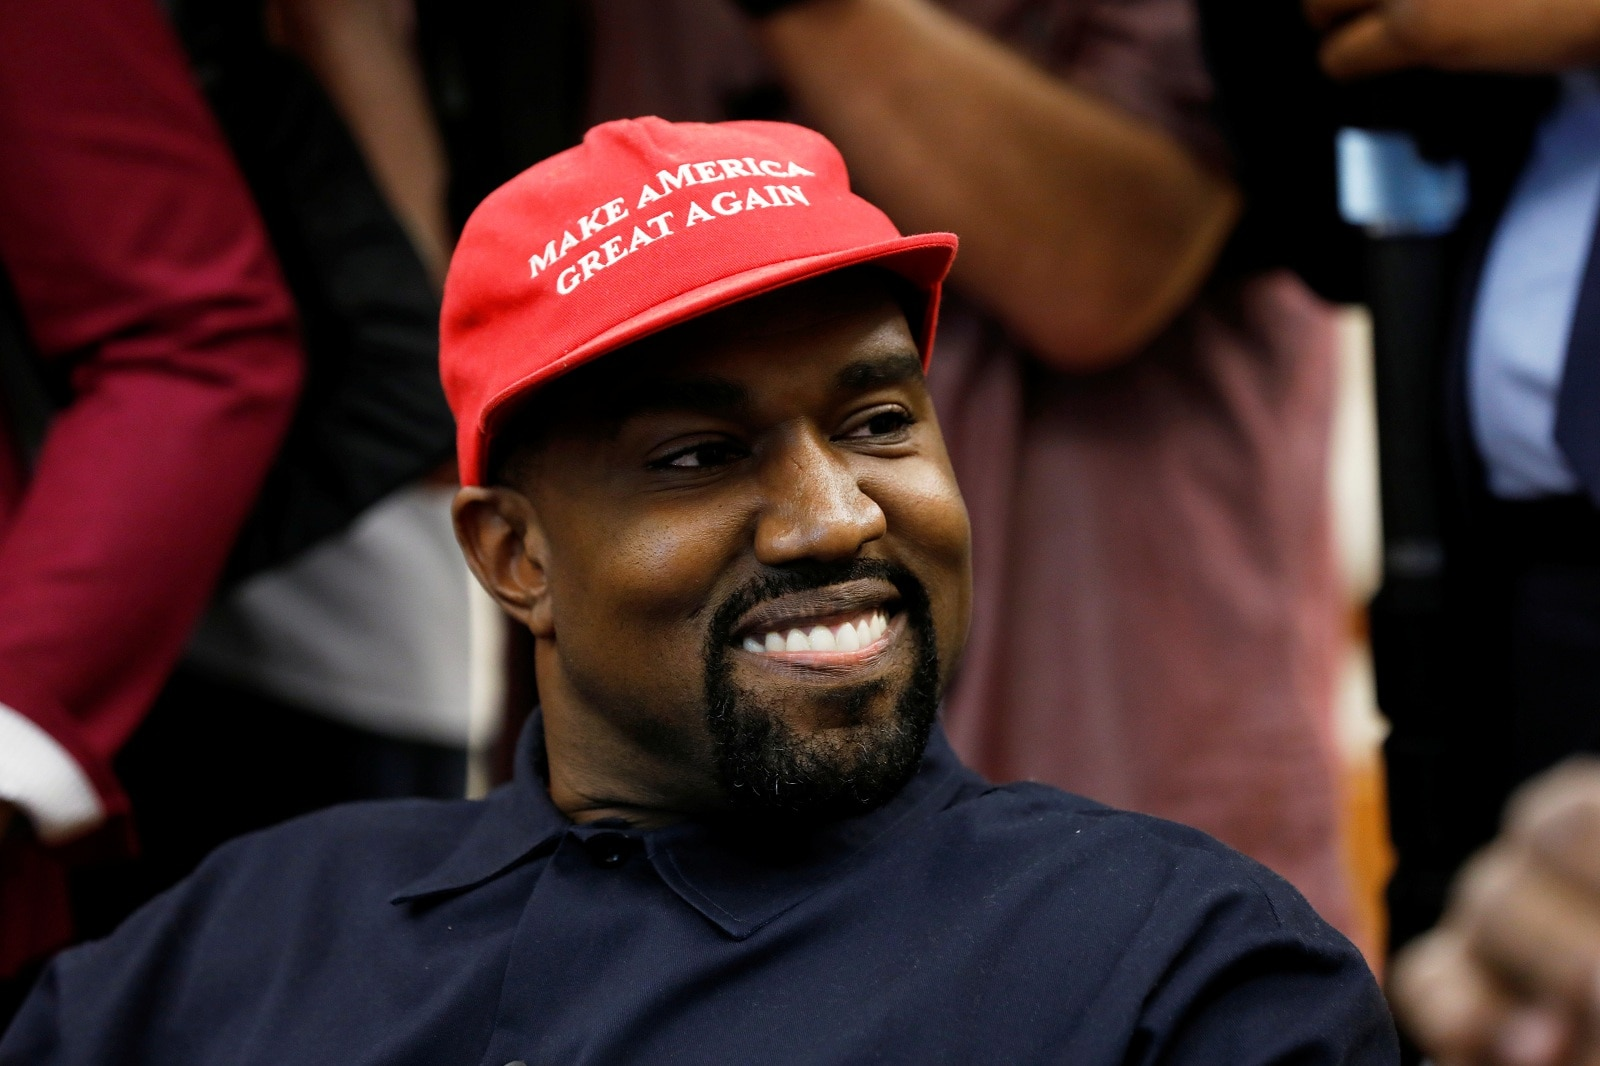 #3. Kanye West: Net Worth: $150 million. A majority of West's pay comes from his Yeezy sneakers in partnership with Adidas, which pays him a per-shoe royalty of 15 percent on wholesale. Yeezy has done an estimated $1 billion in sales over the past 12 months. Separately, West also cashes in on his Yeezy apparel line. He owns his brands outright. (Image: Reuters)